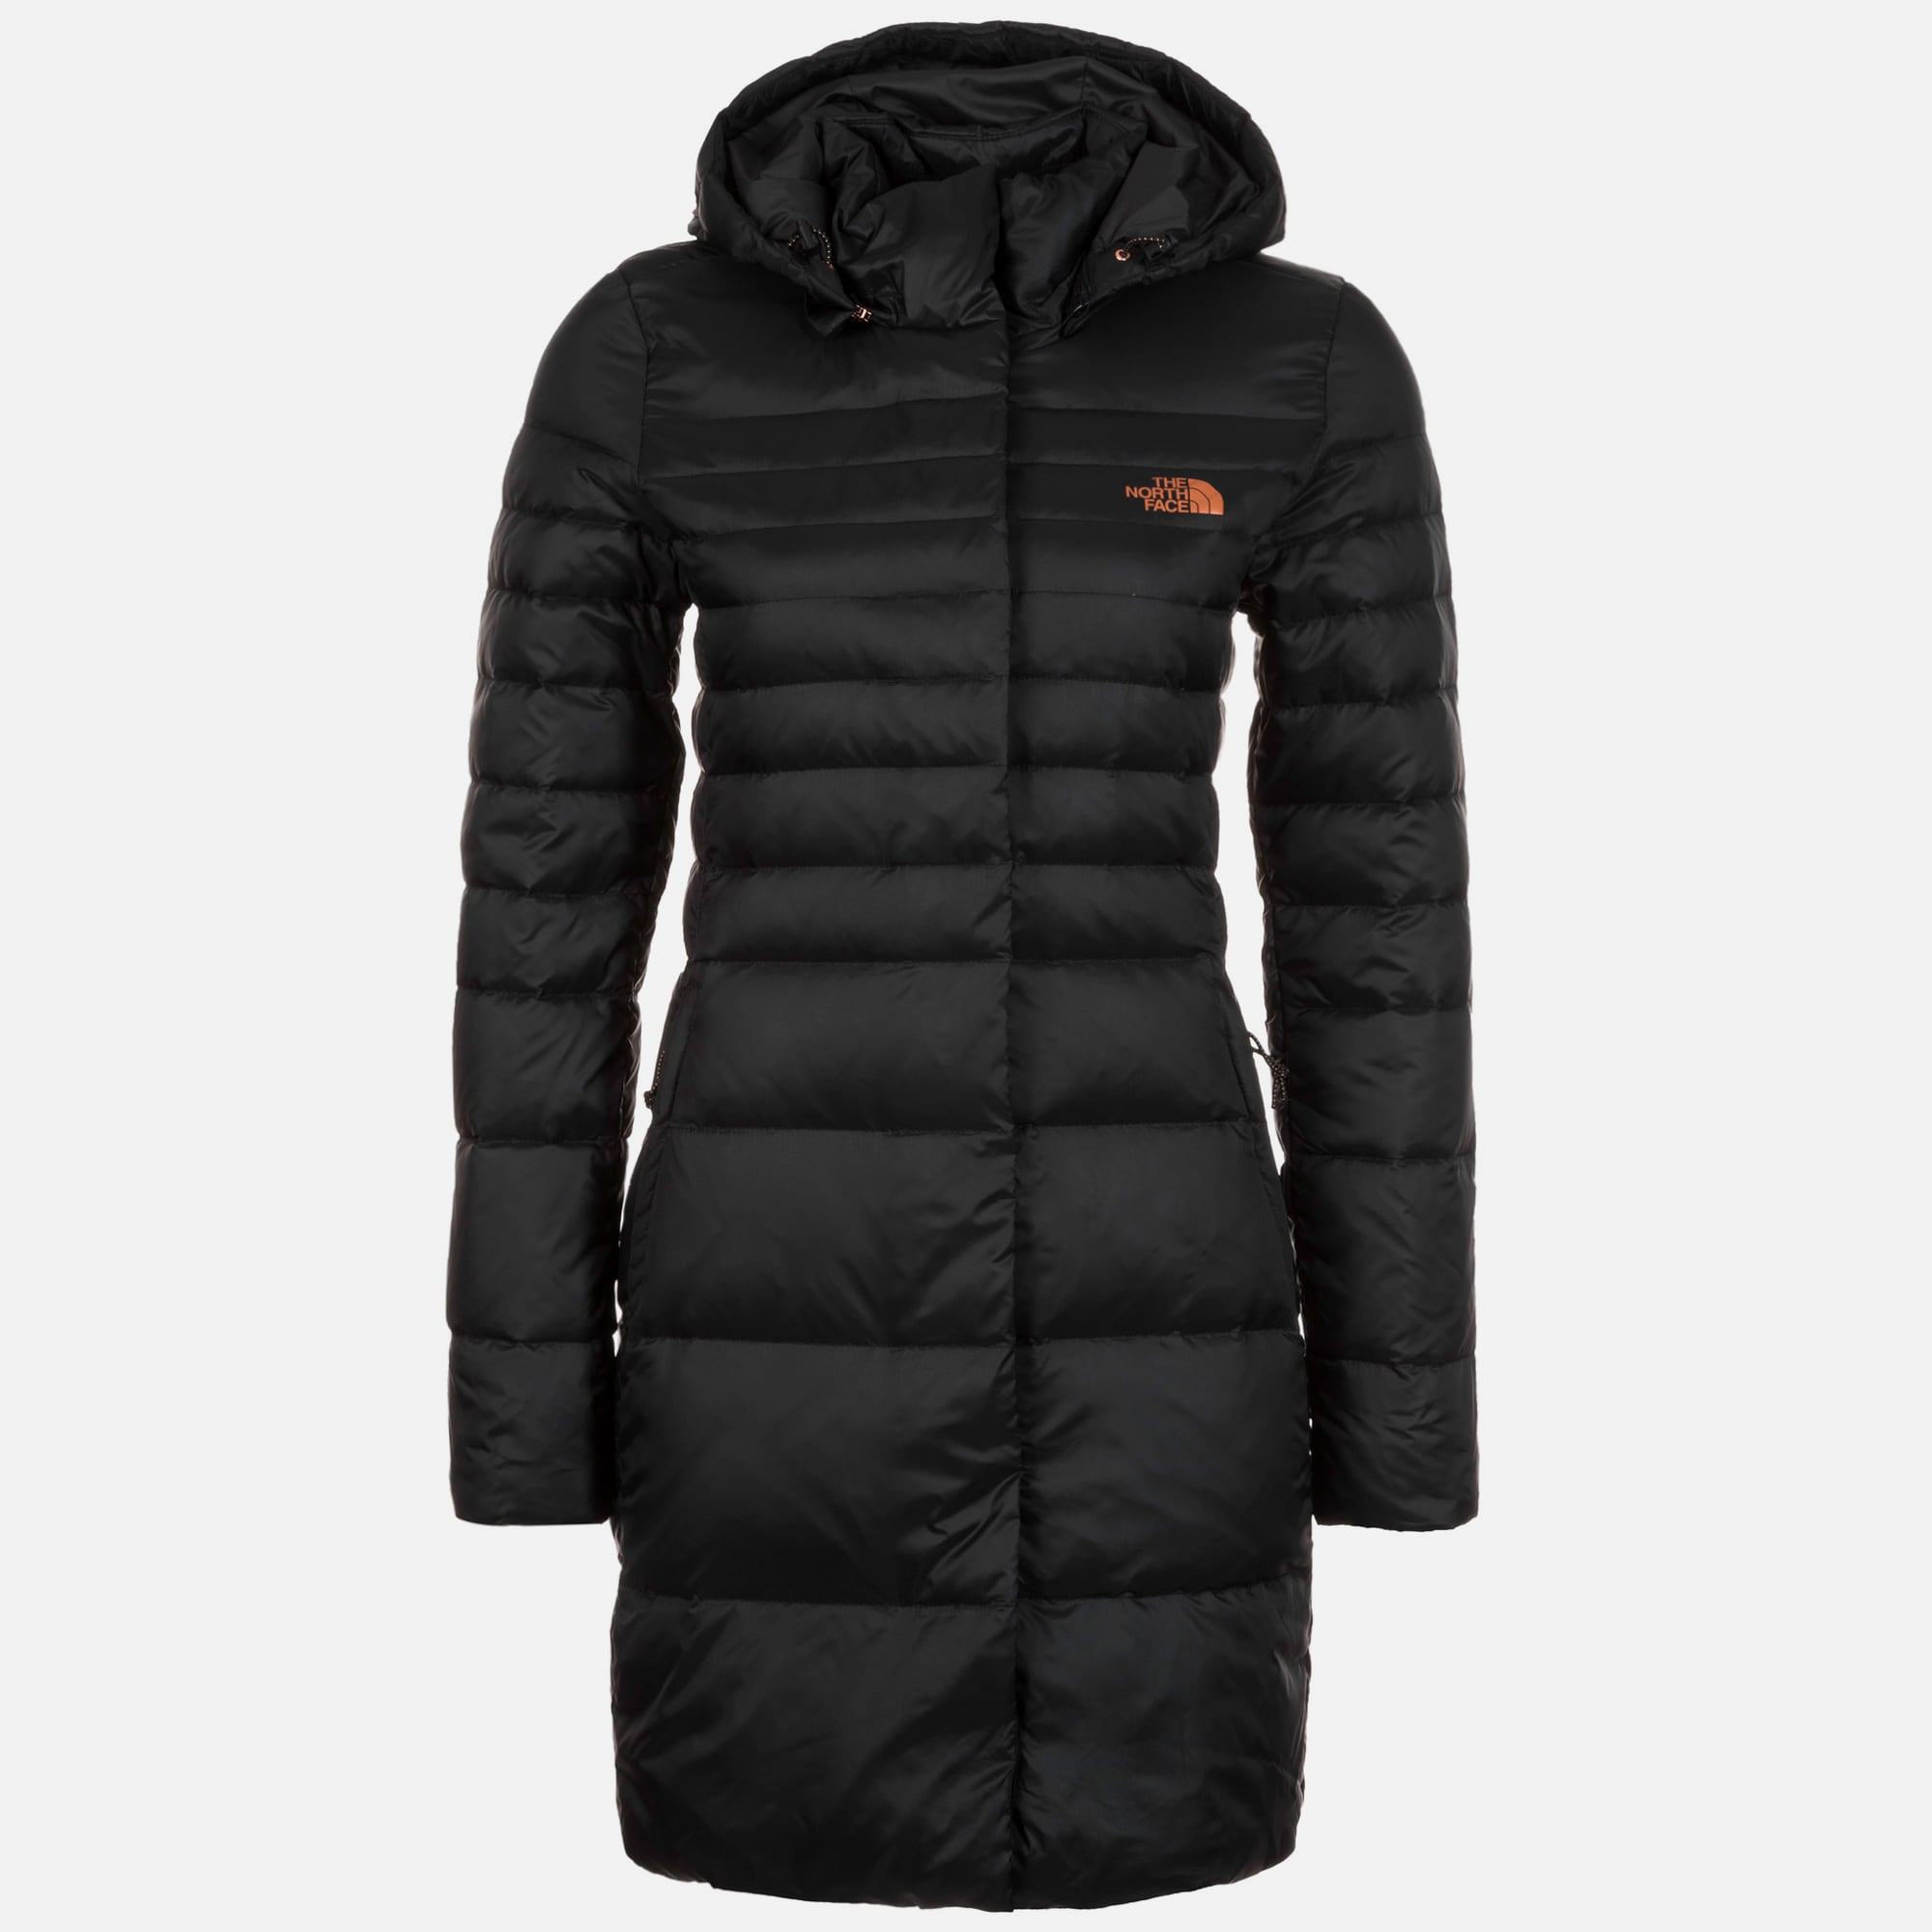 the north face daunenmantel 39 kings canyon parka 39 in schwarz about you. Black Bedroom Furniture Sets. Home Design Ideas